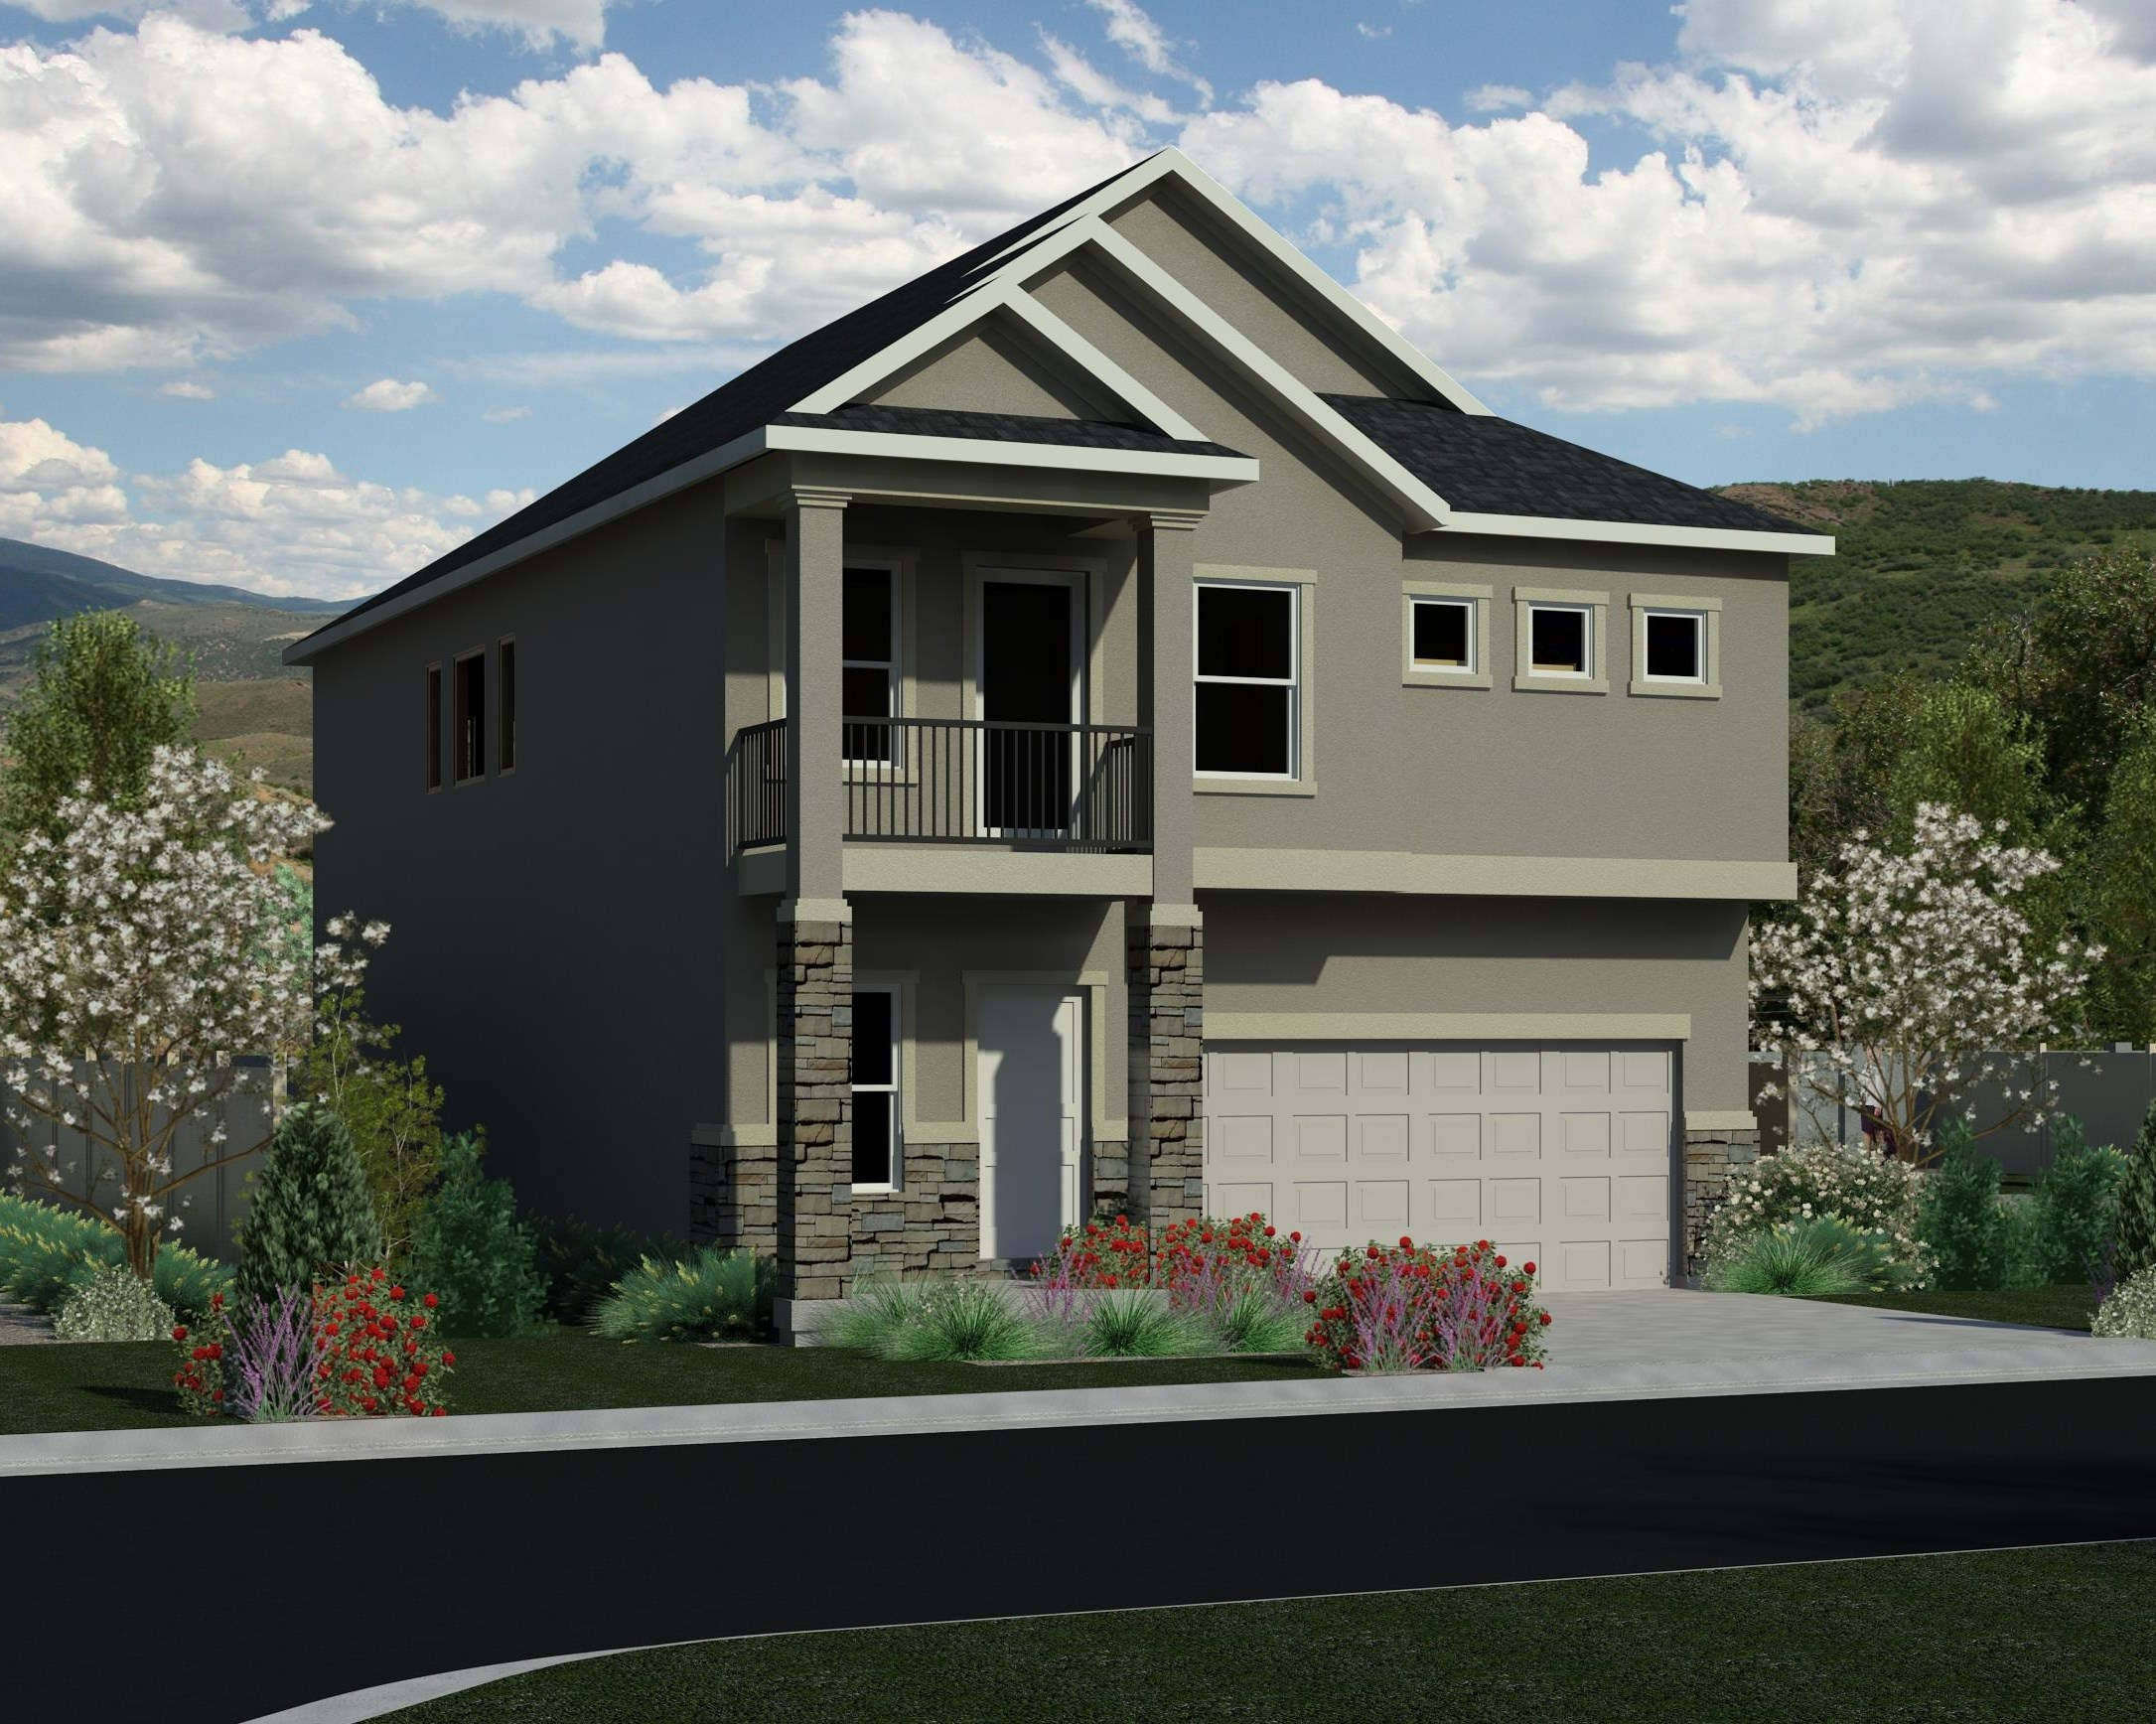 Walker home design utah parkwood in kaysville ut new homes for Utah home builders floor plans